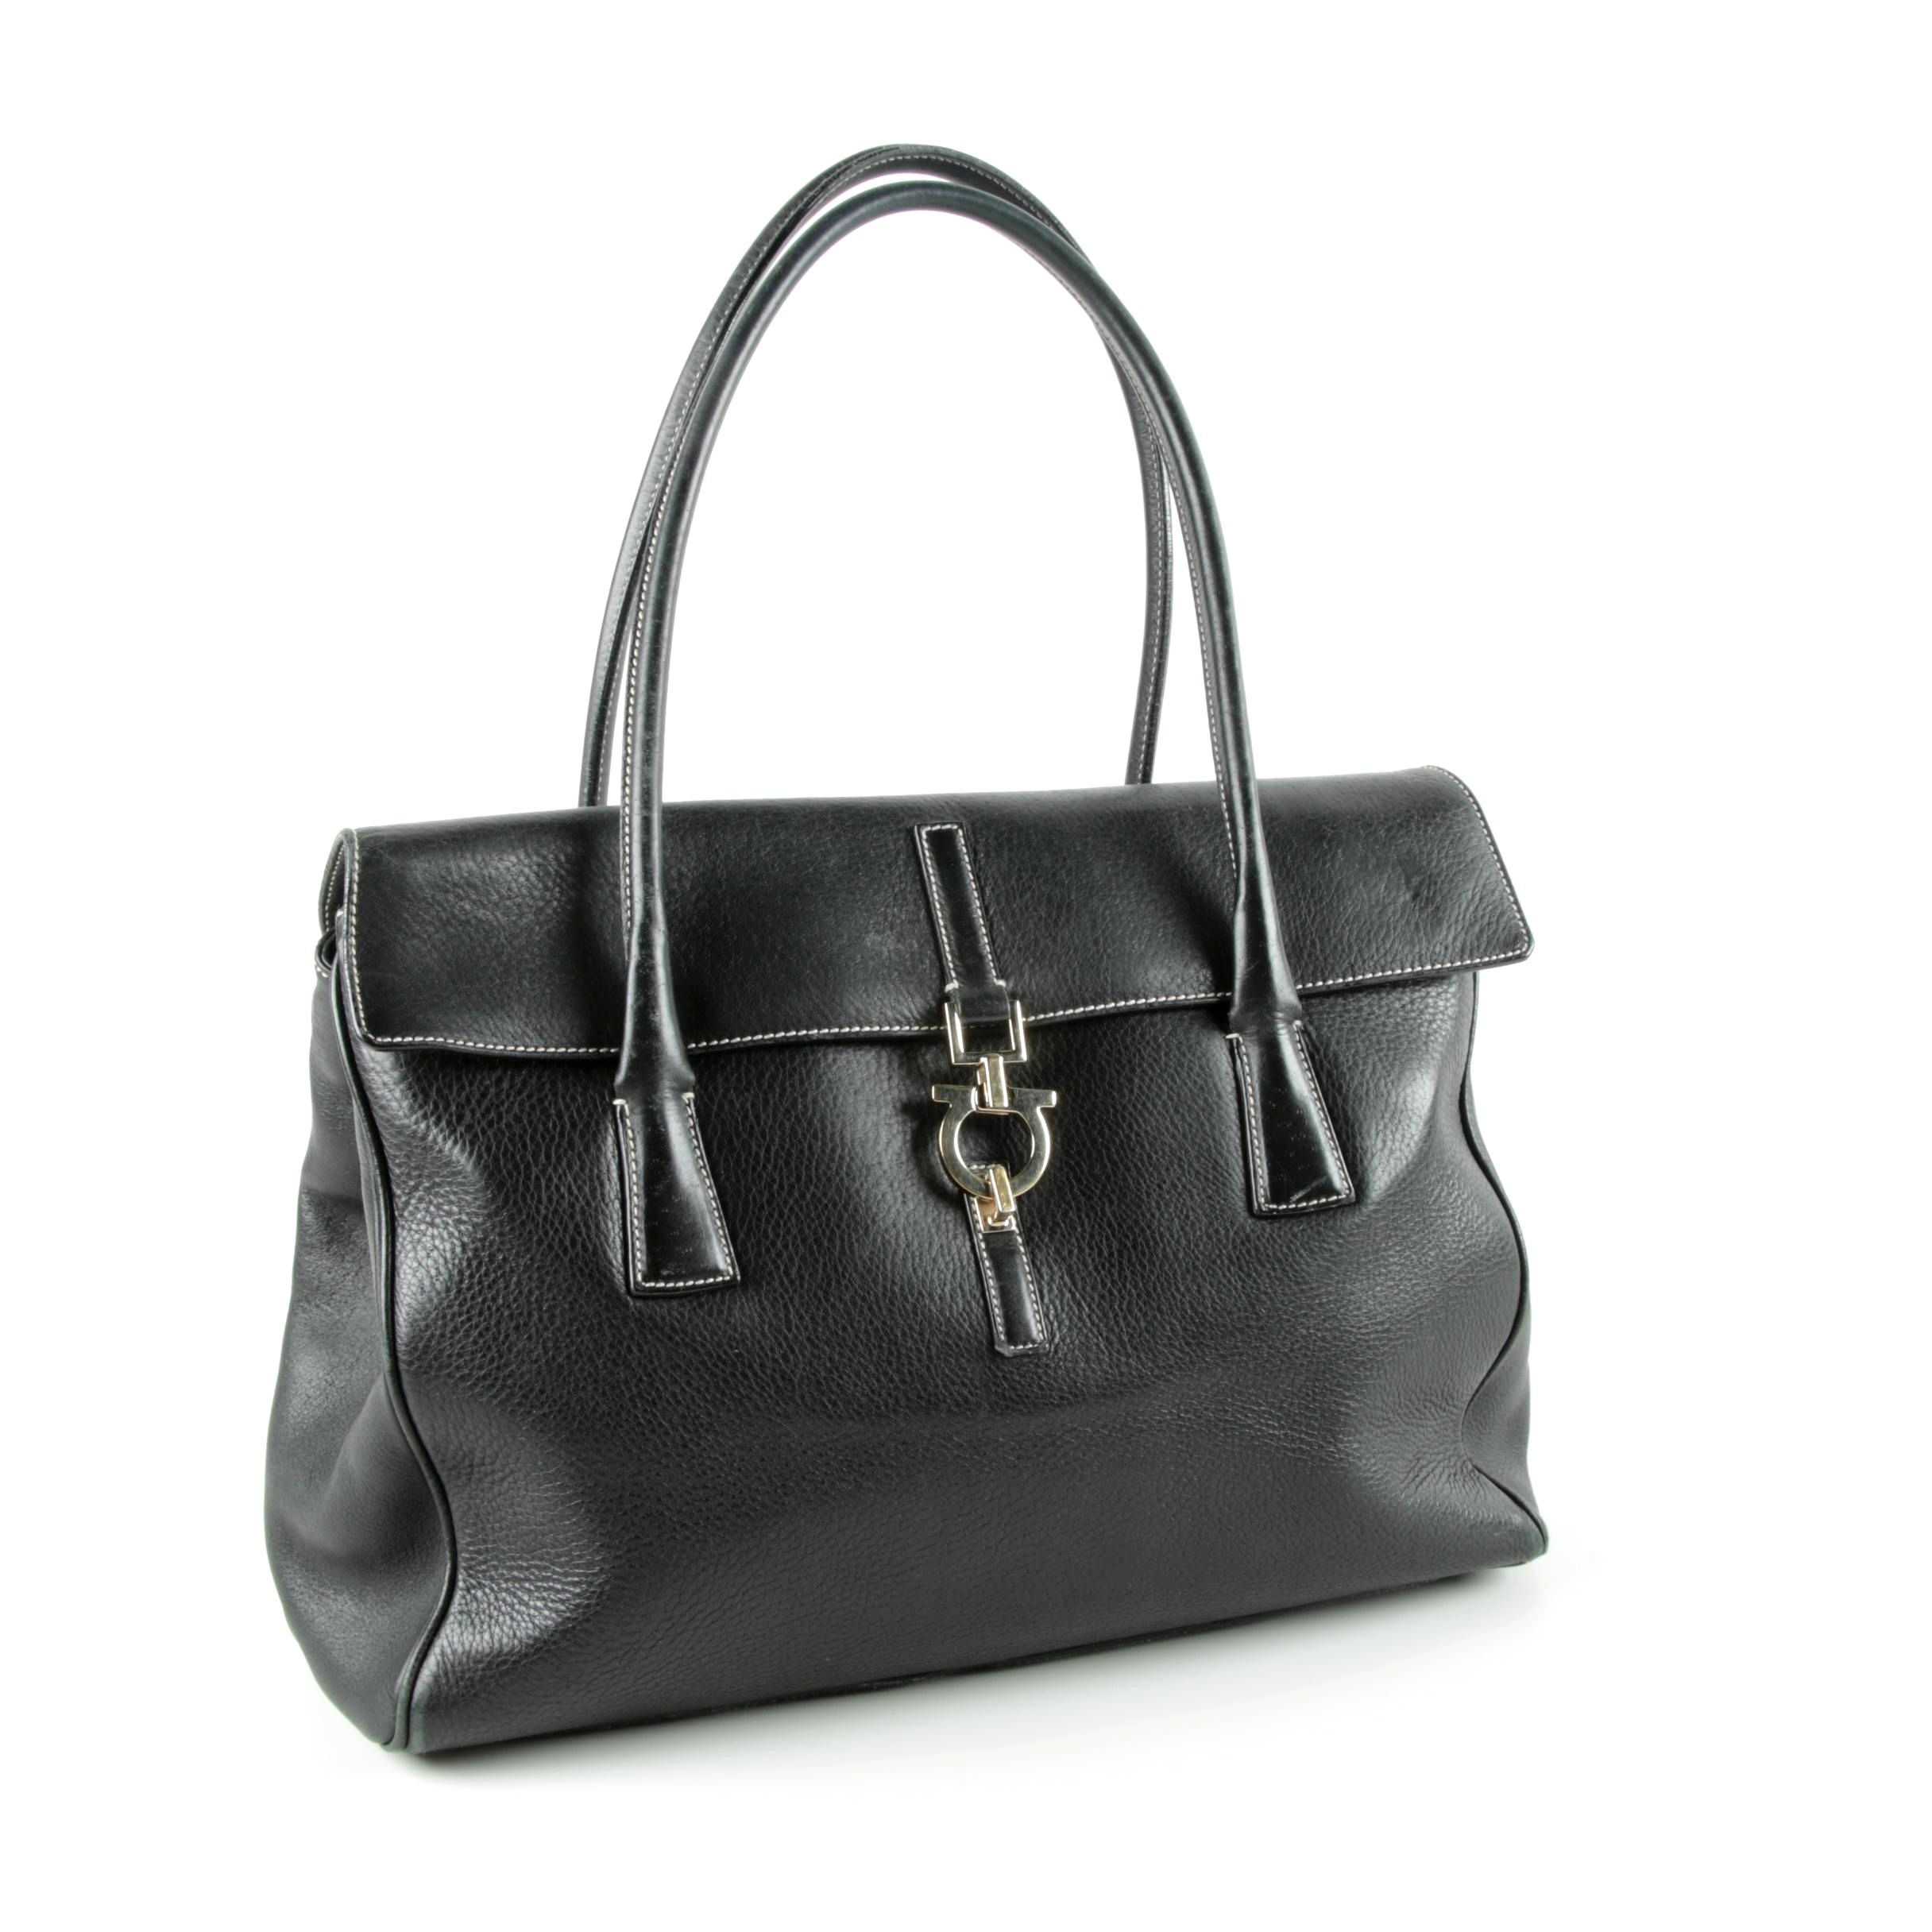 Salvatore Ferragamo Black Leather Gancini Handbag